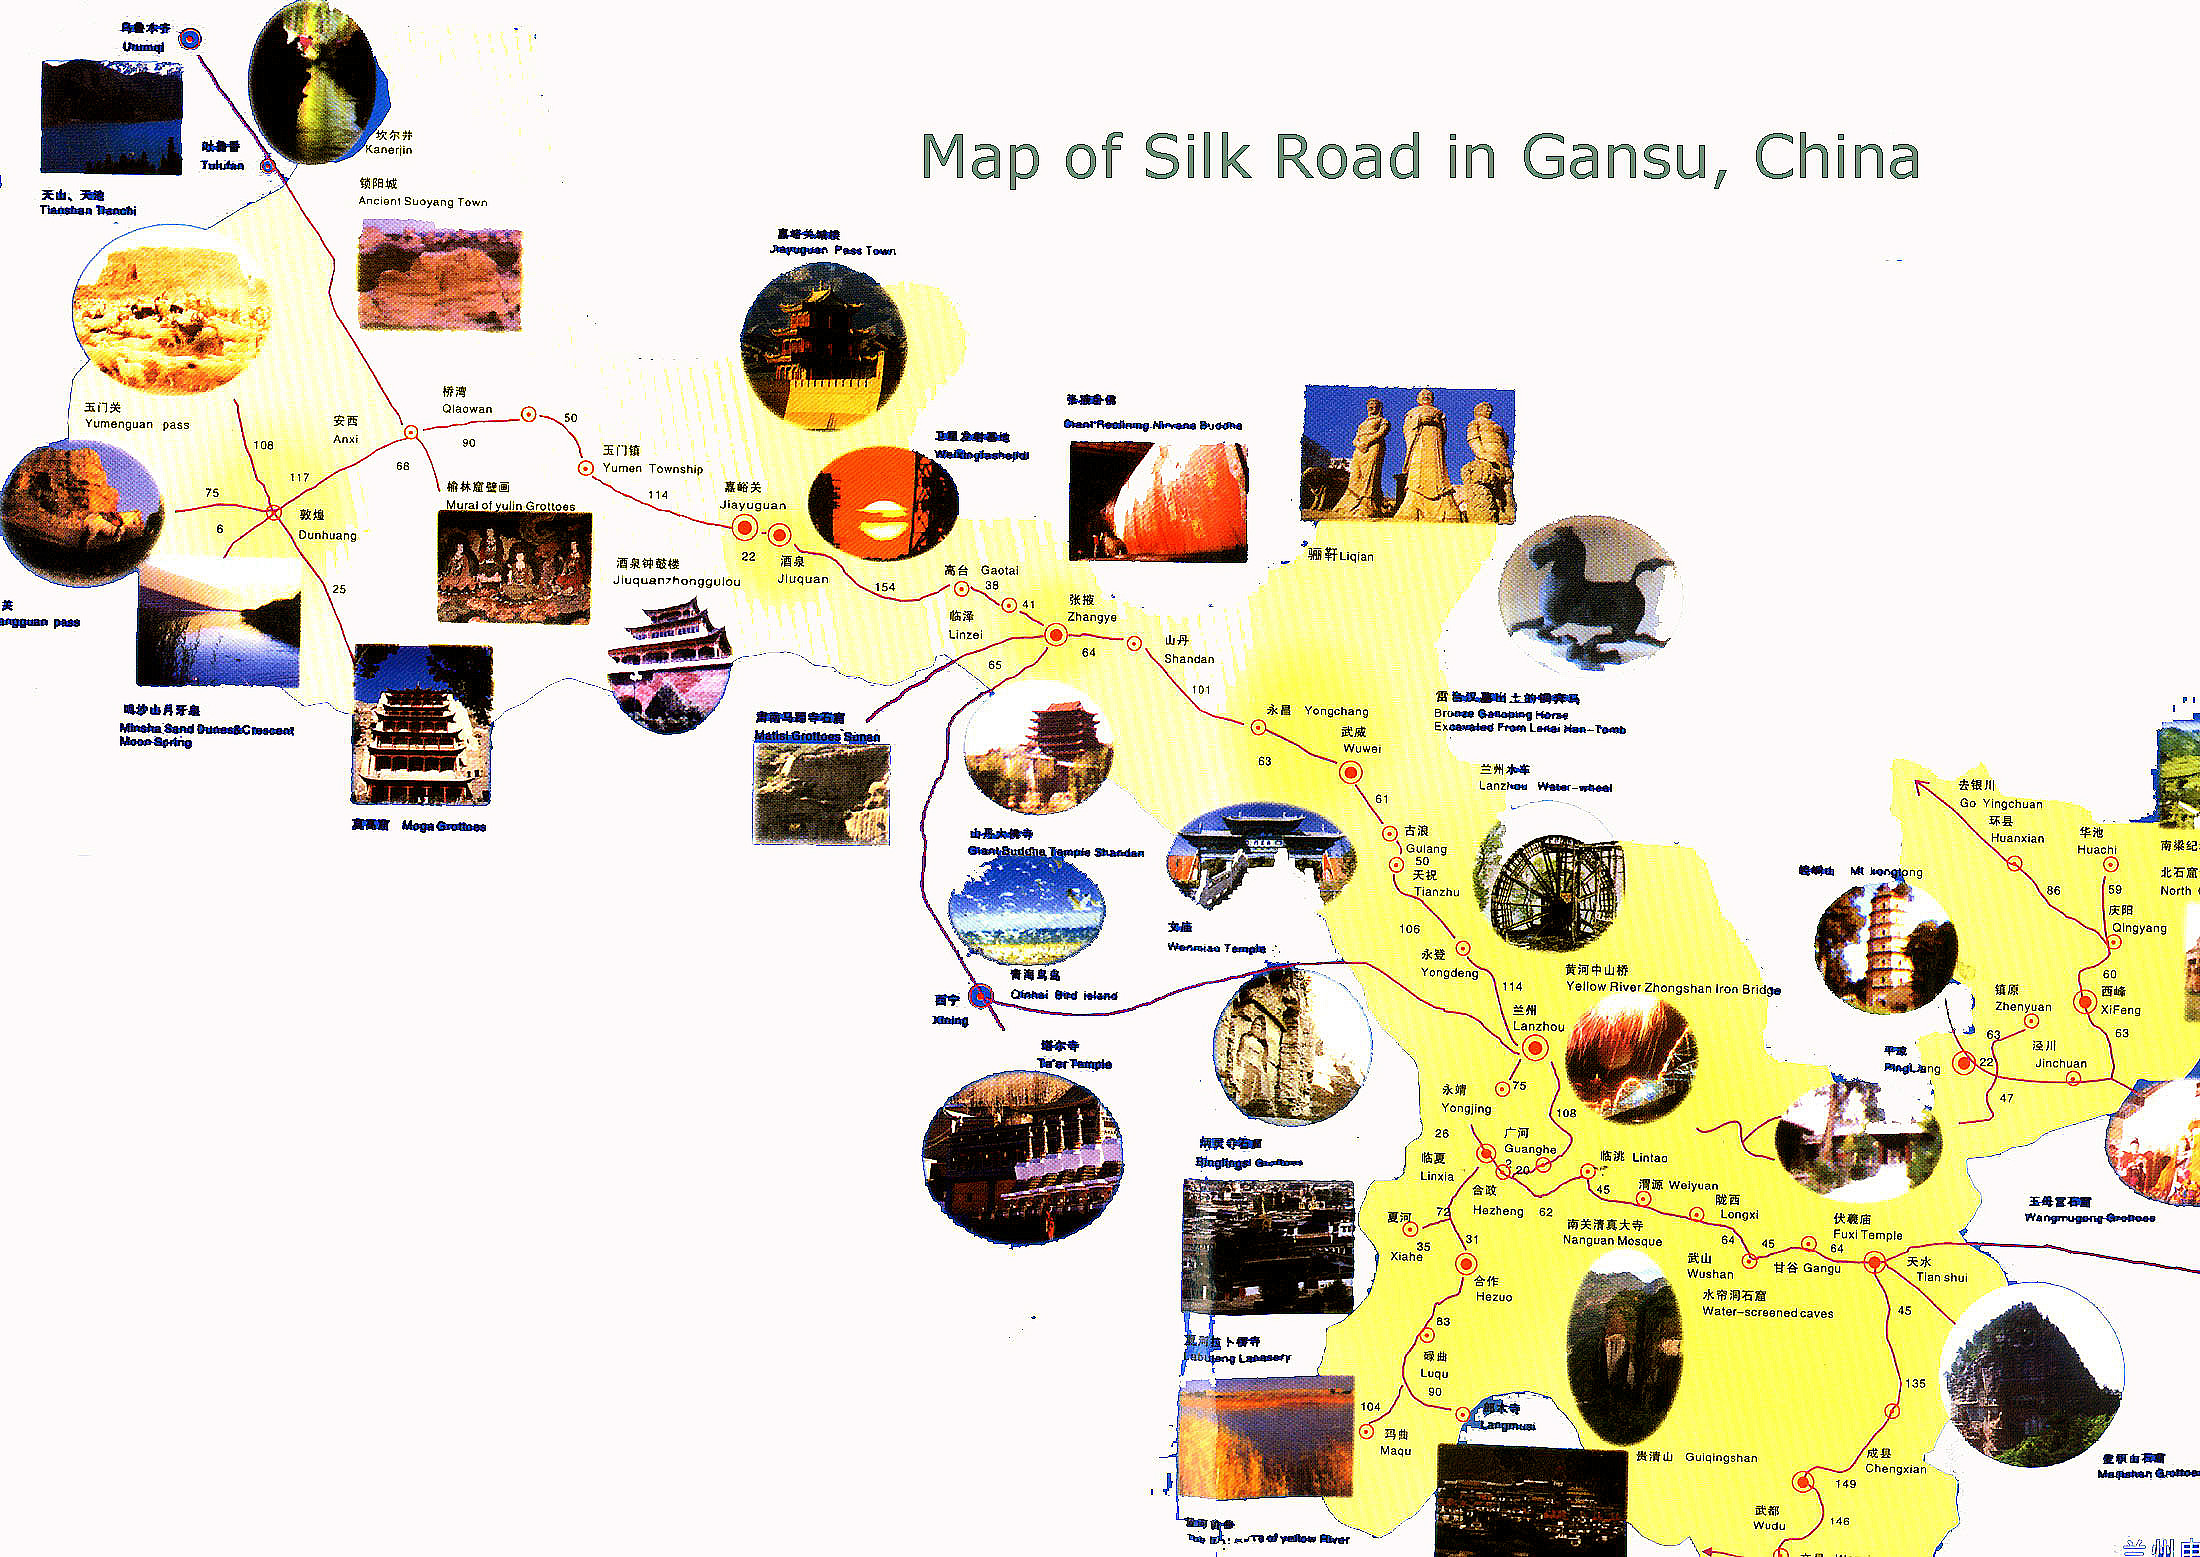 Silk Road Maps A Map Hepls Your Explore The Silk Road Adventure - Us new silk road map